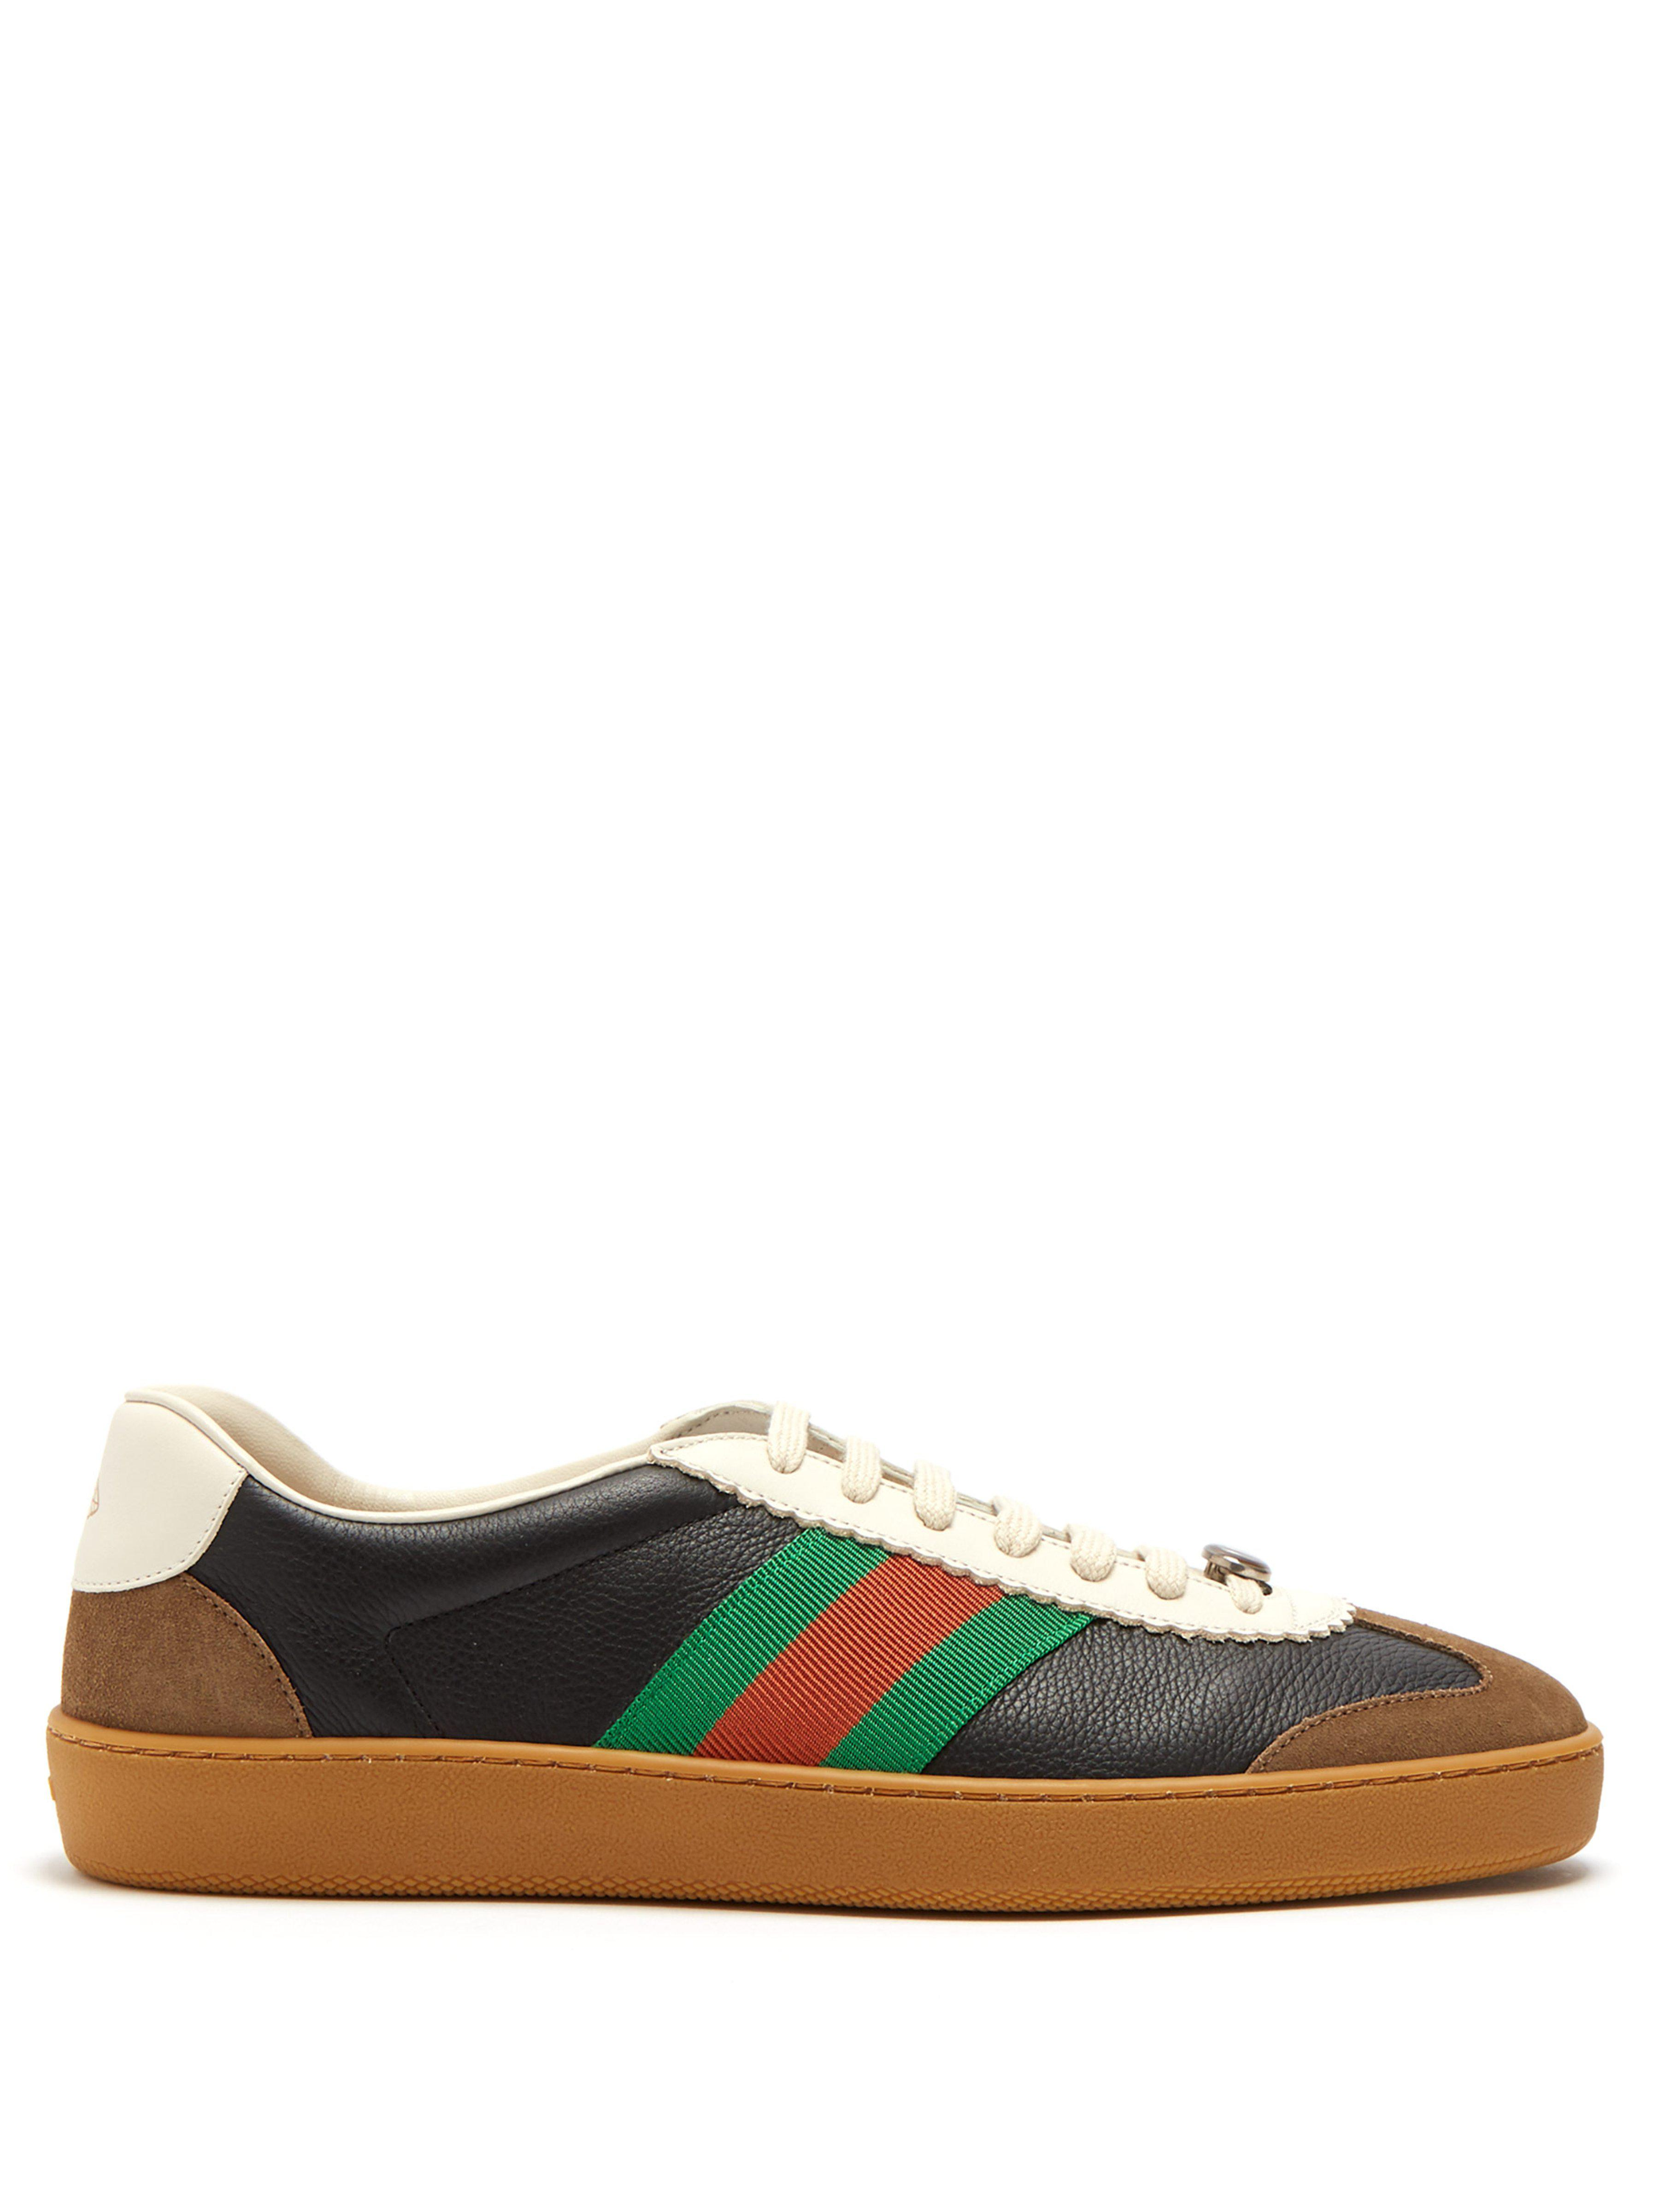 ba5c6dc77069f Gucci Leather And Suede Web Trainers in Black for Men - Save 10% - Lyst